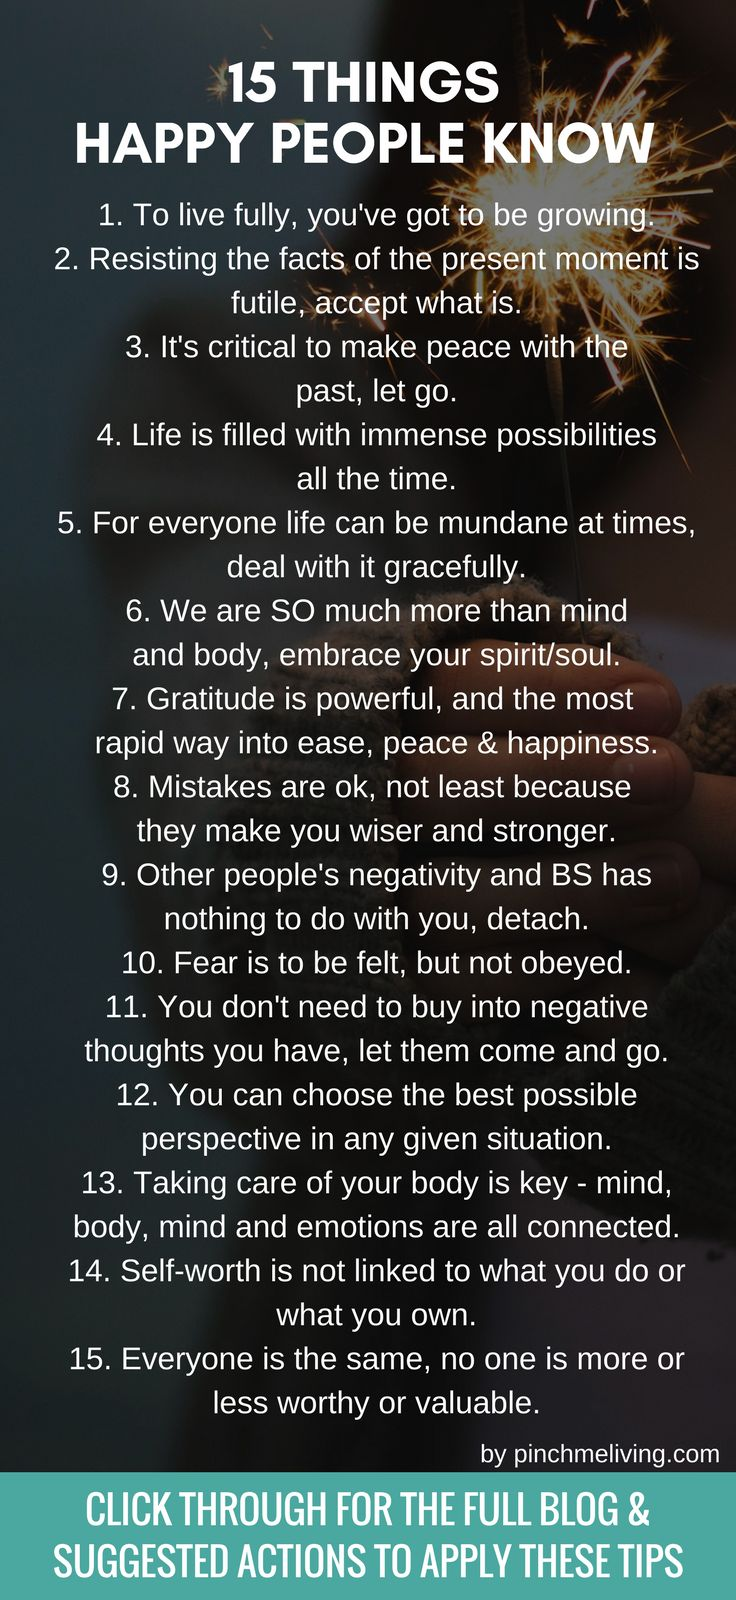 If you want to know how to be happy, it makes a lot of sense to take a look at what happy people know and do. They must be onto something if they're happy! Here are 15 things happy people know and do, that you can apply too https://www.pinchmeliving.com/how-to-be-happy/ via @pinchmeliving